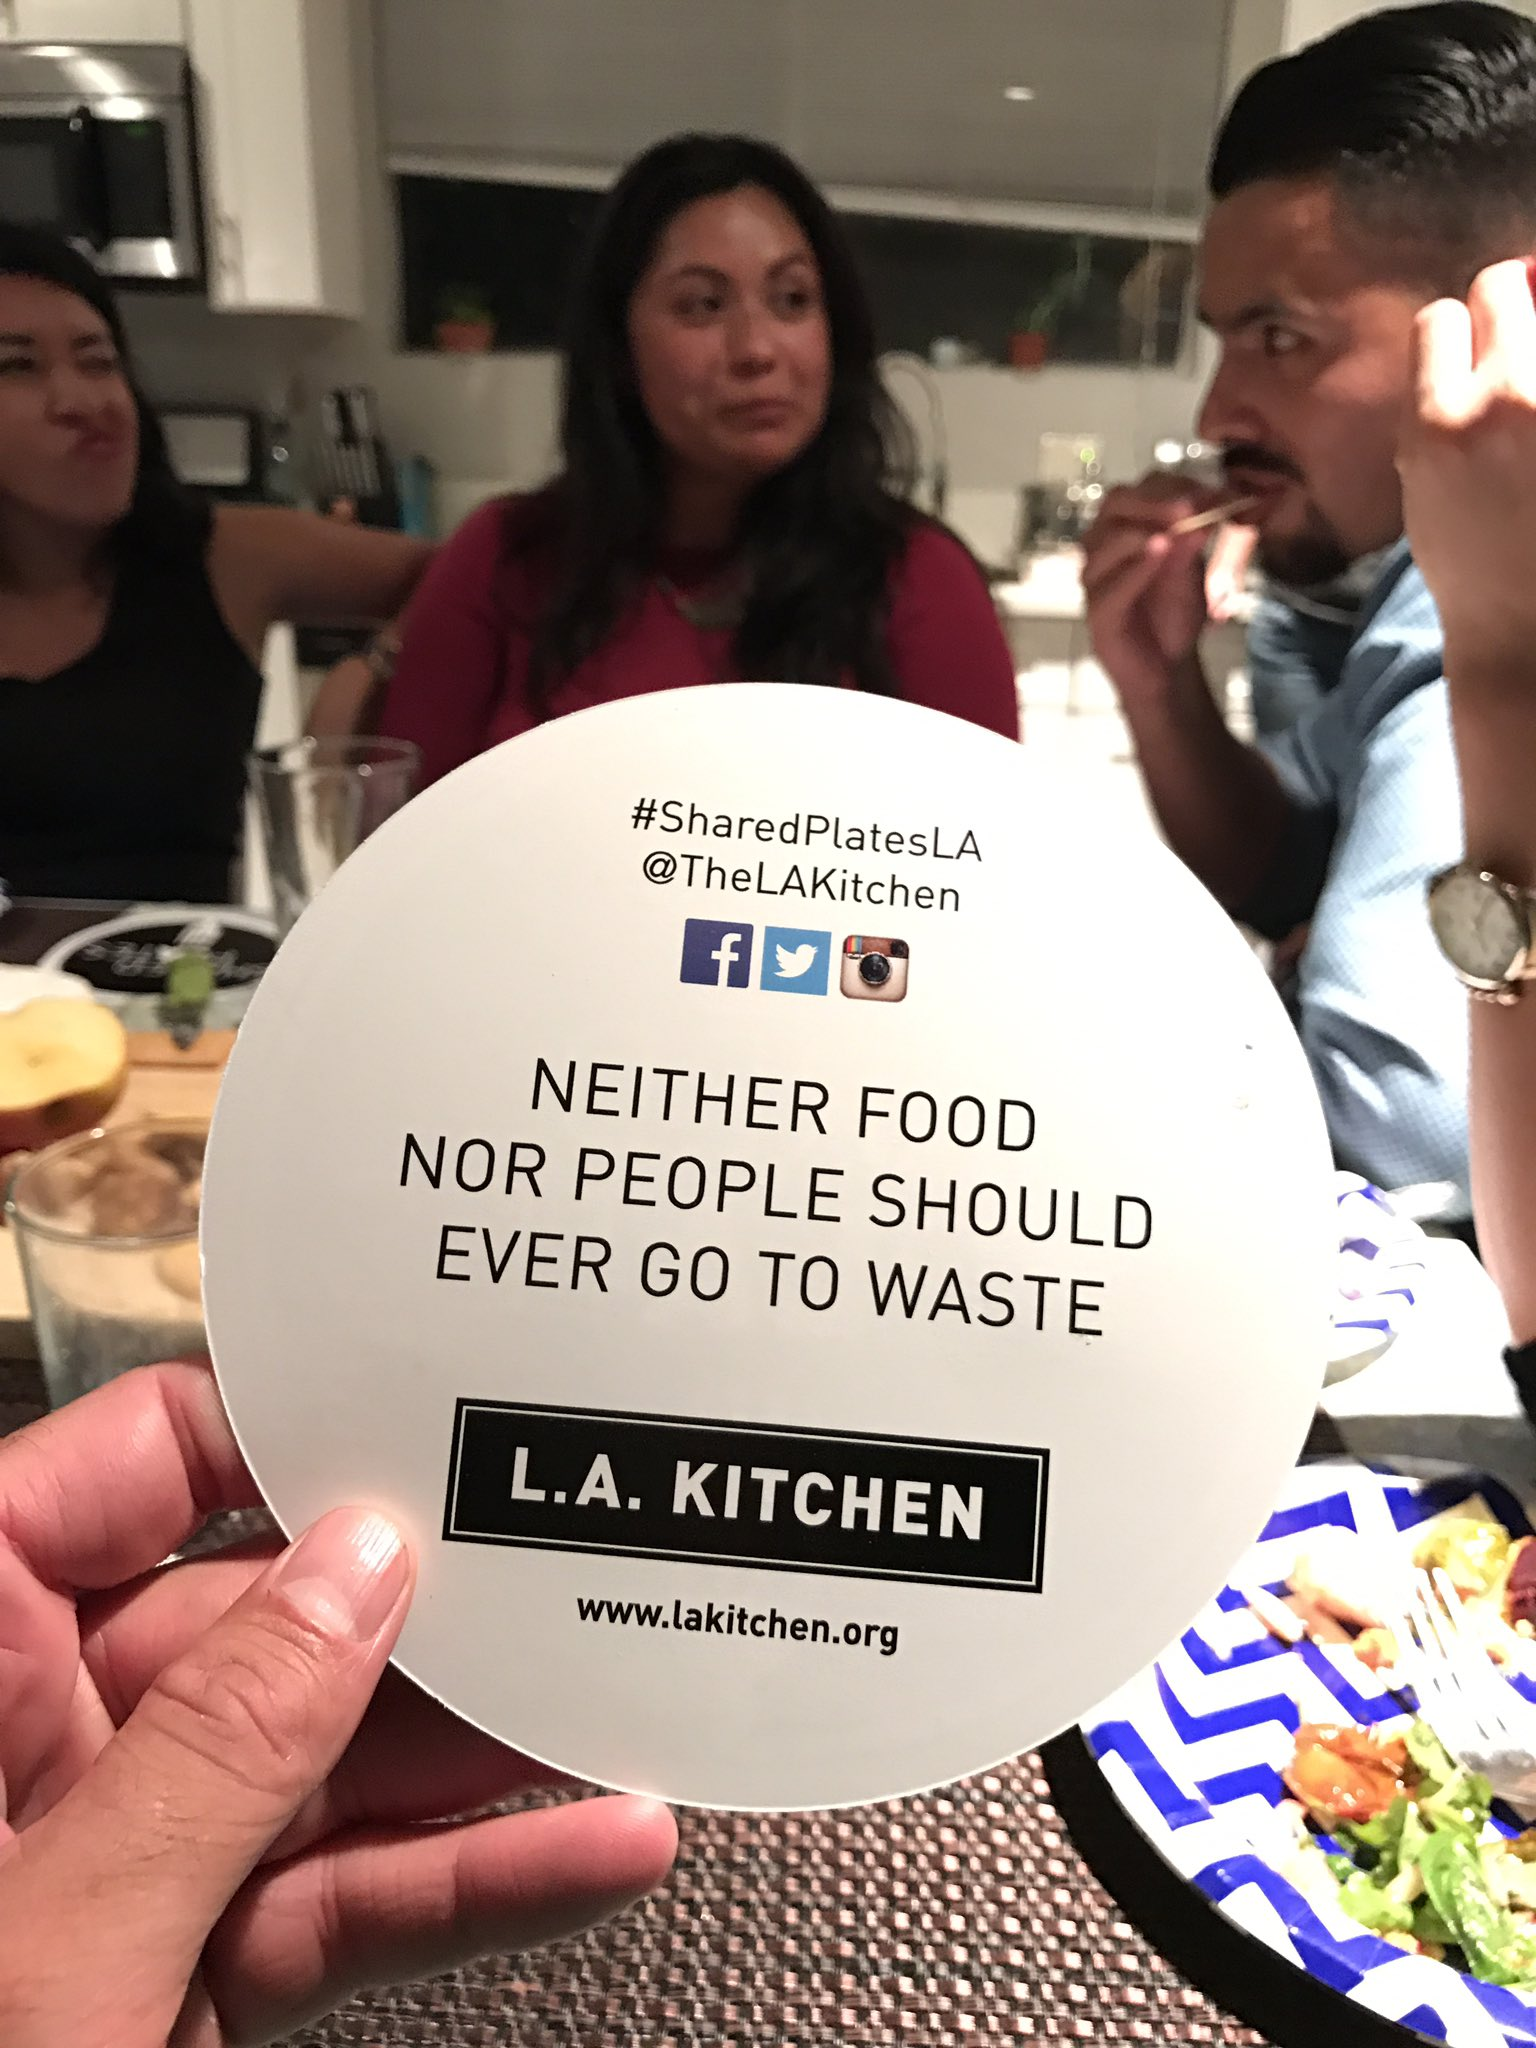 #sharedPlatesLA @TheLAKitchen https://t.co/oc3LP4I1I1